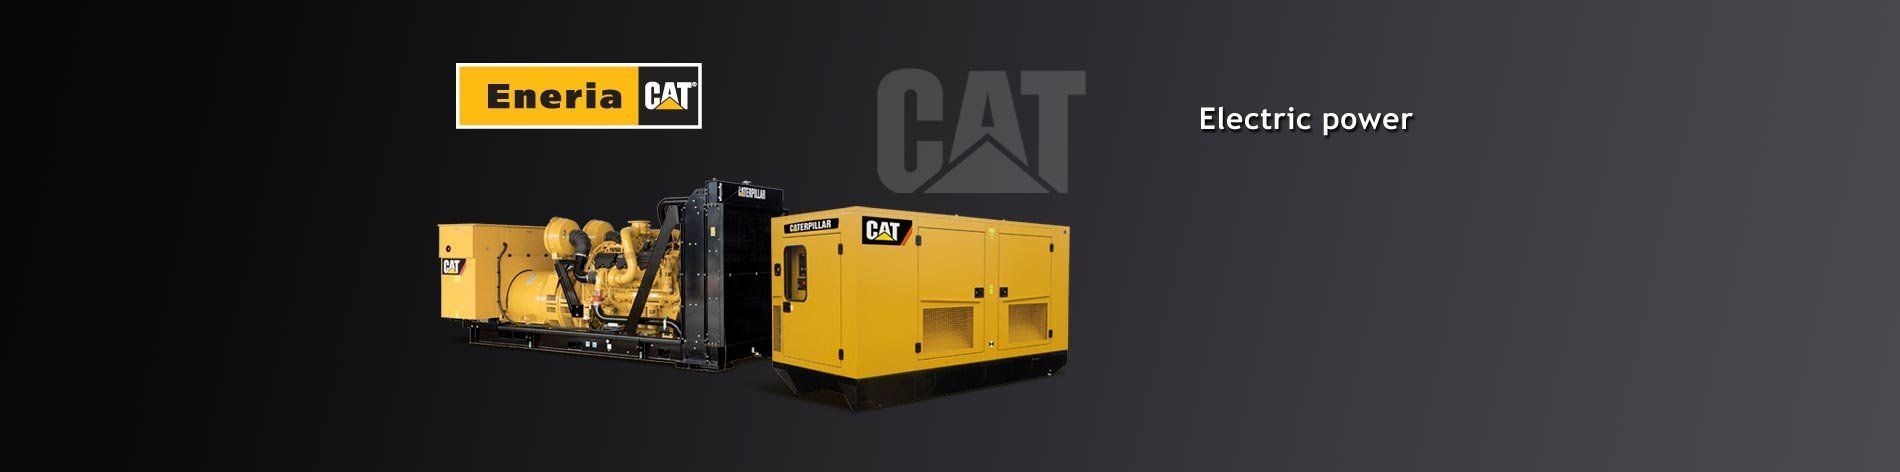 Whether stationary or mobile sets with outputs from 10 kW to 4,000 kW, we distribute and install Caterpillar generator sets in any configuration, whether containerised or in buildings, in any environment and climate around the world.